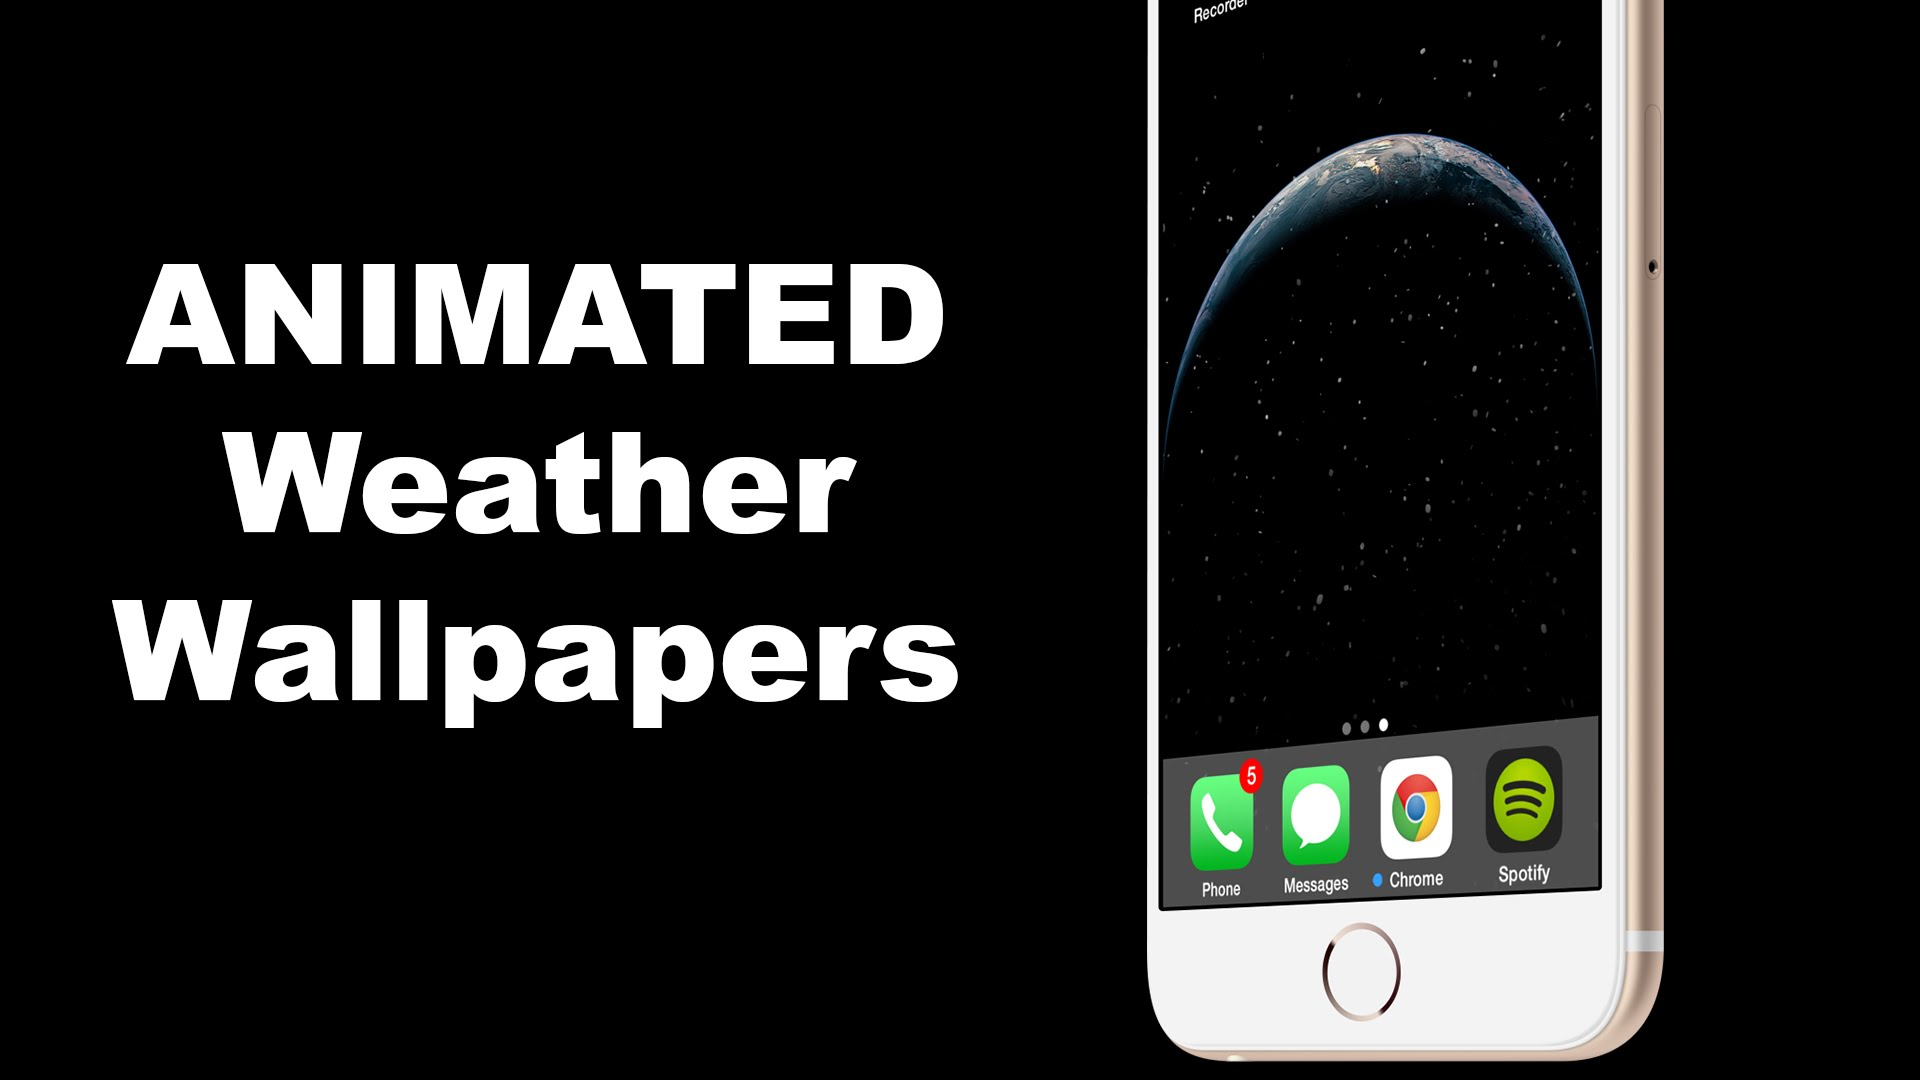 How To Add Wallpaper To Iphone